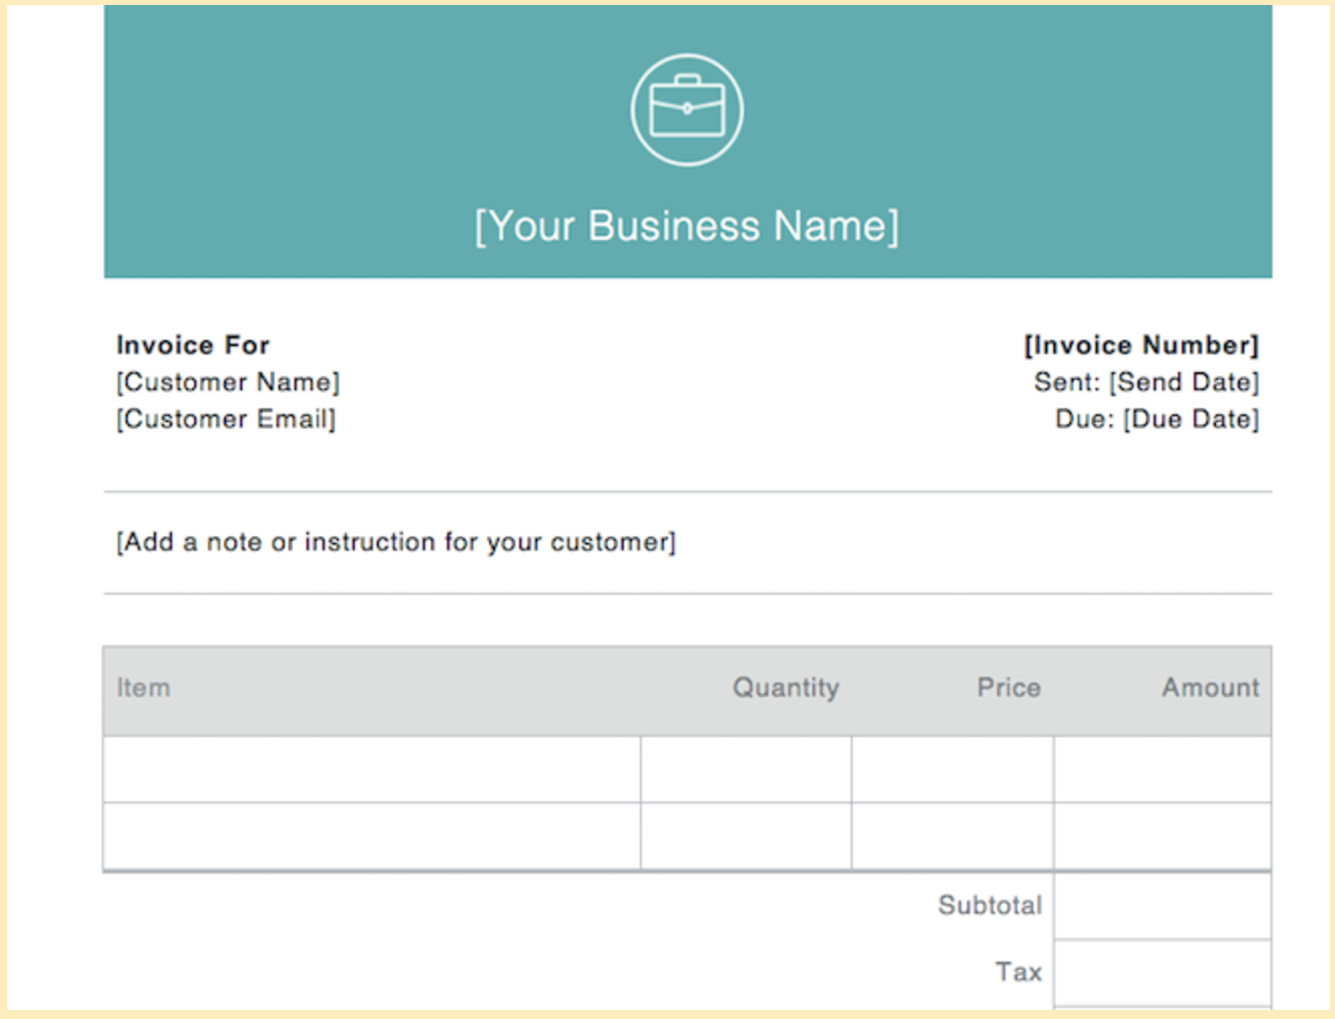 Invoice Examples For Every Kind Of Business - Sample invoice templates